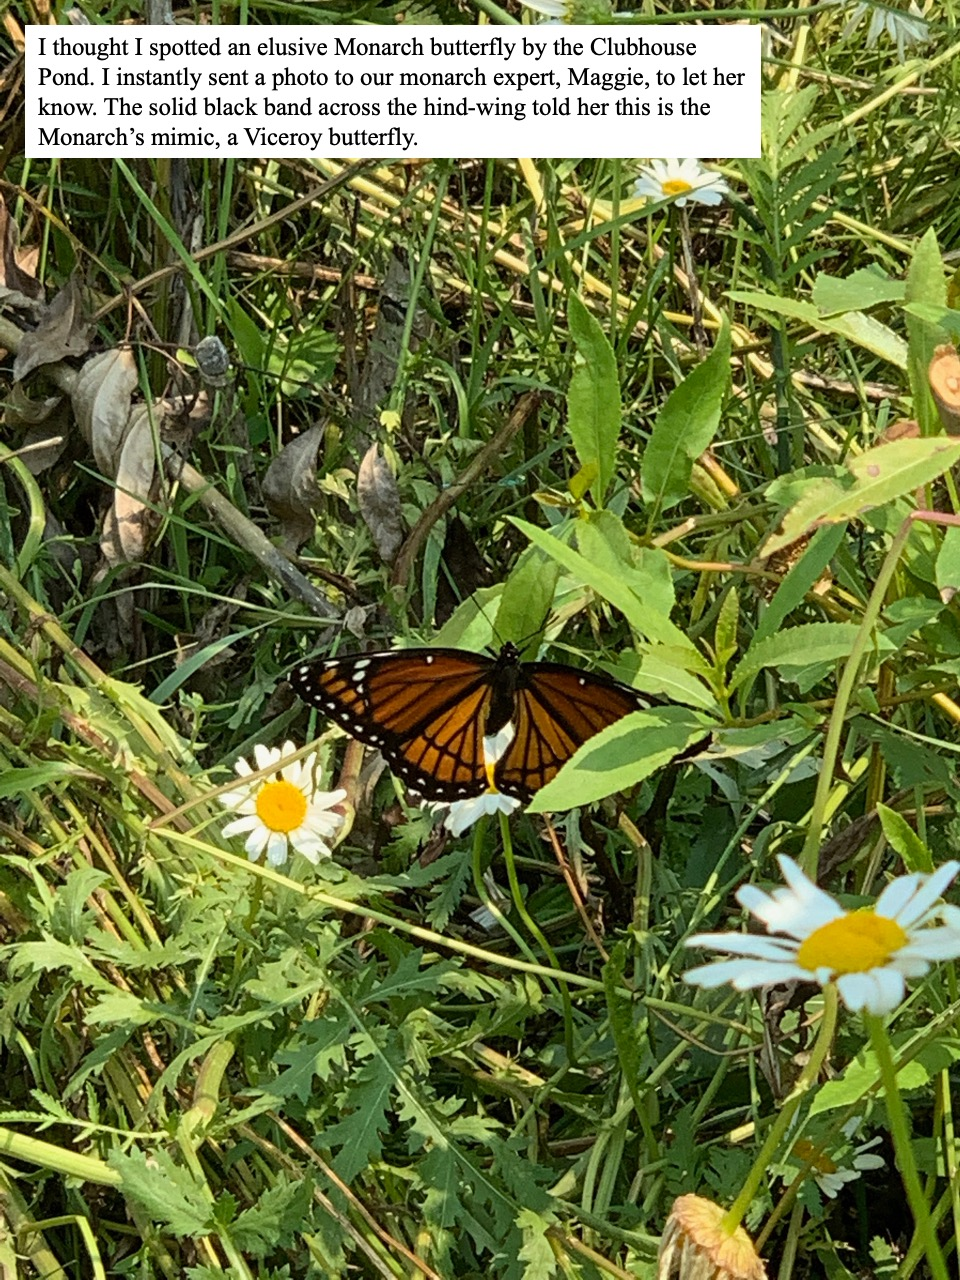 I thought I spotted an elusive Monarch butterfly by the Clubhouse Pond.